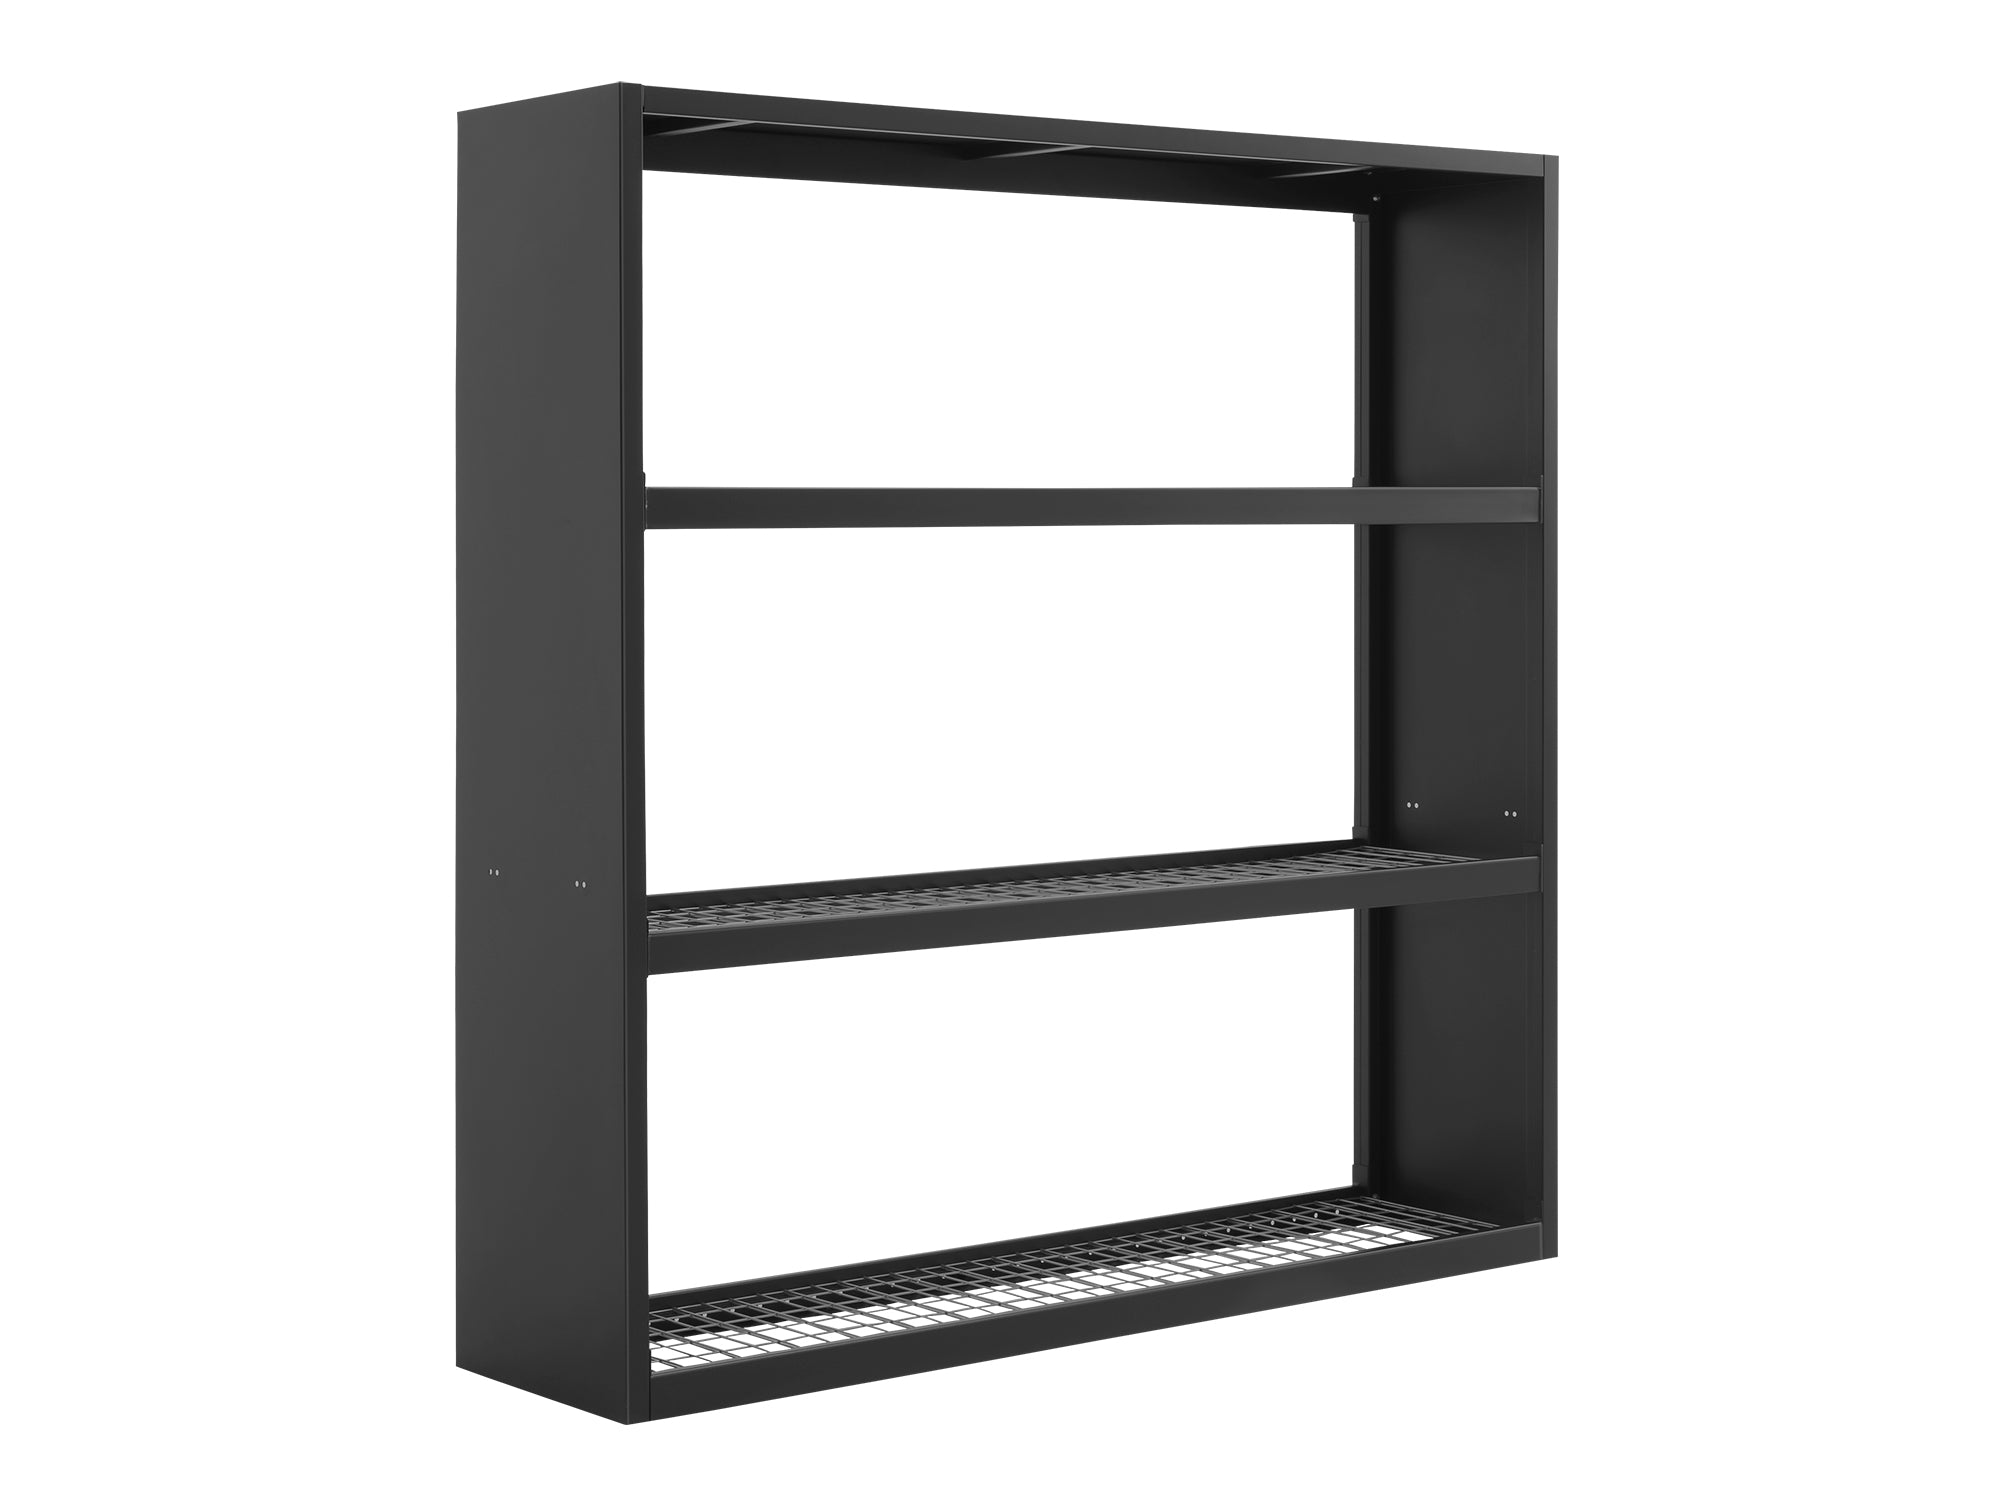 Bold Series 72 in. Wall Mounted Rack - Black